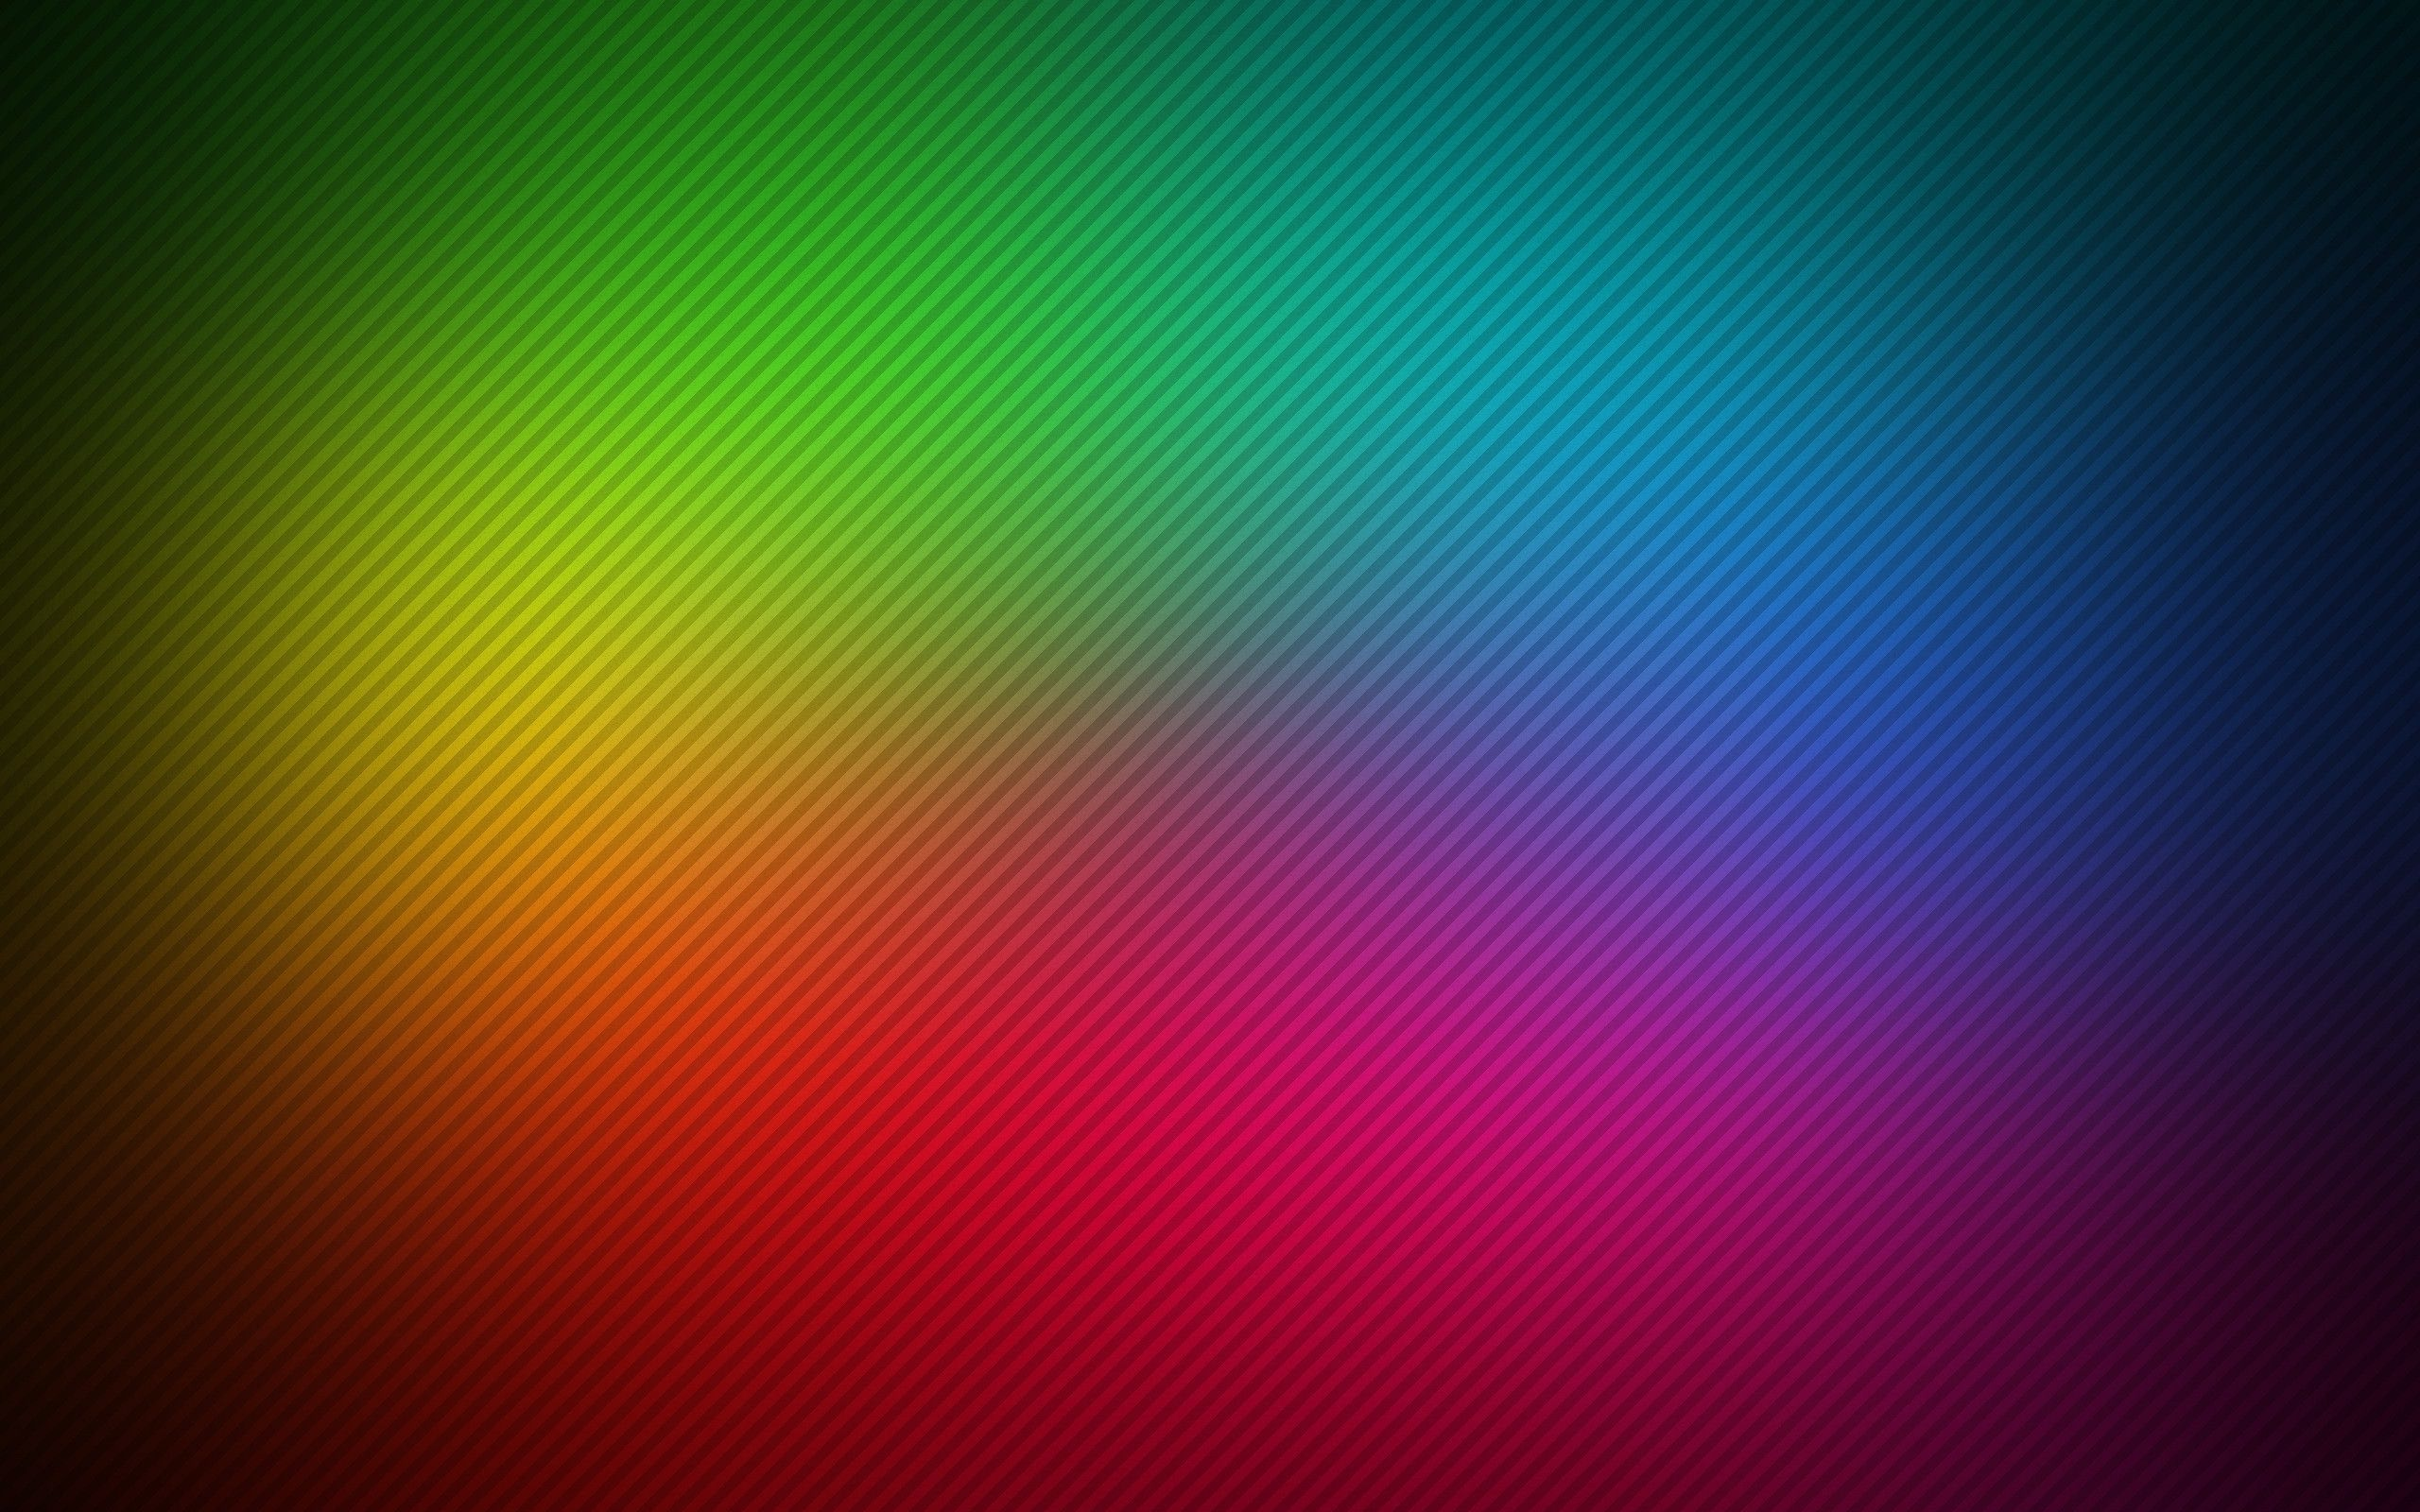 Bright Colors Backgrounds Wallpaper Cave Background Hd Wallpaper Colorful Wallpaper Colorful Backgrounds